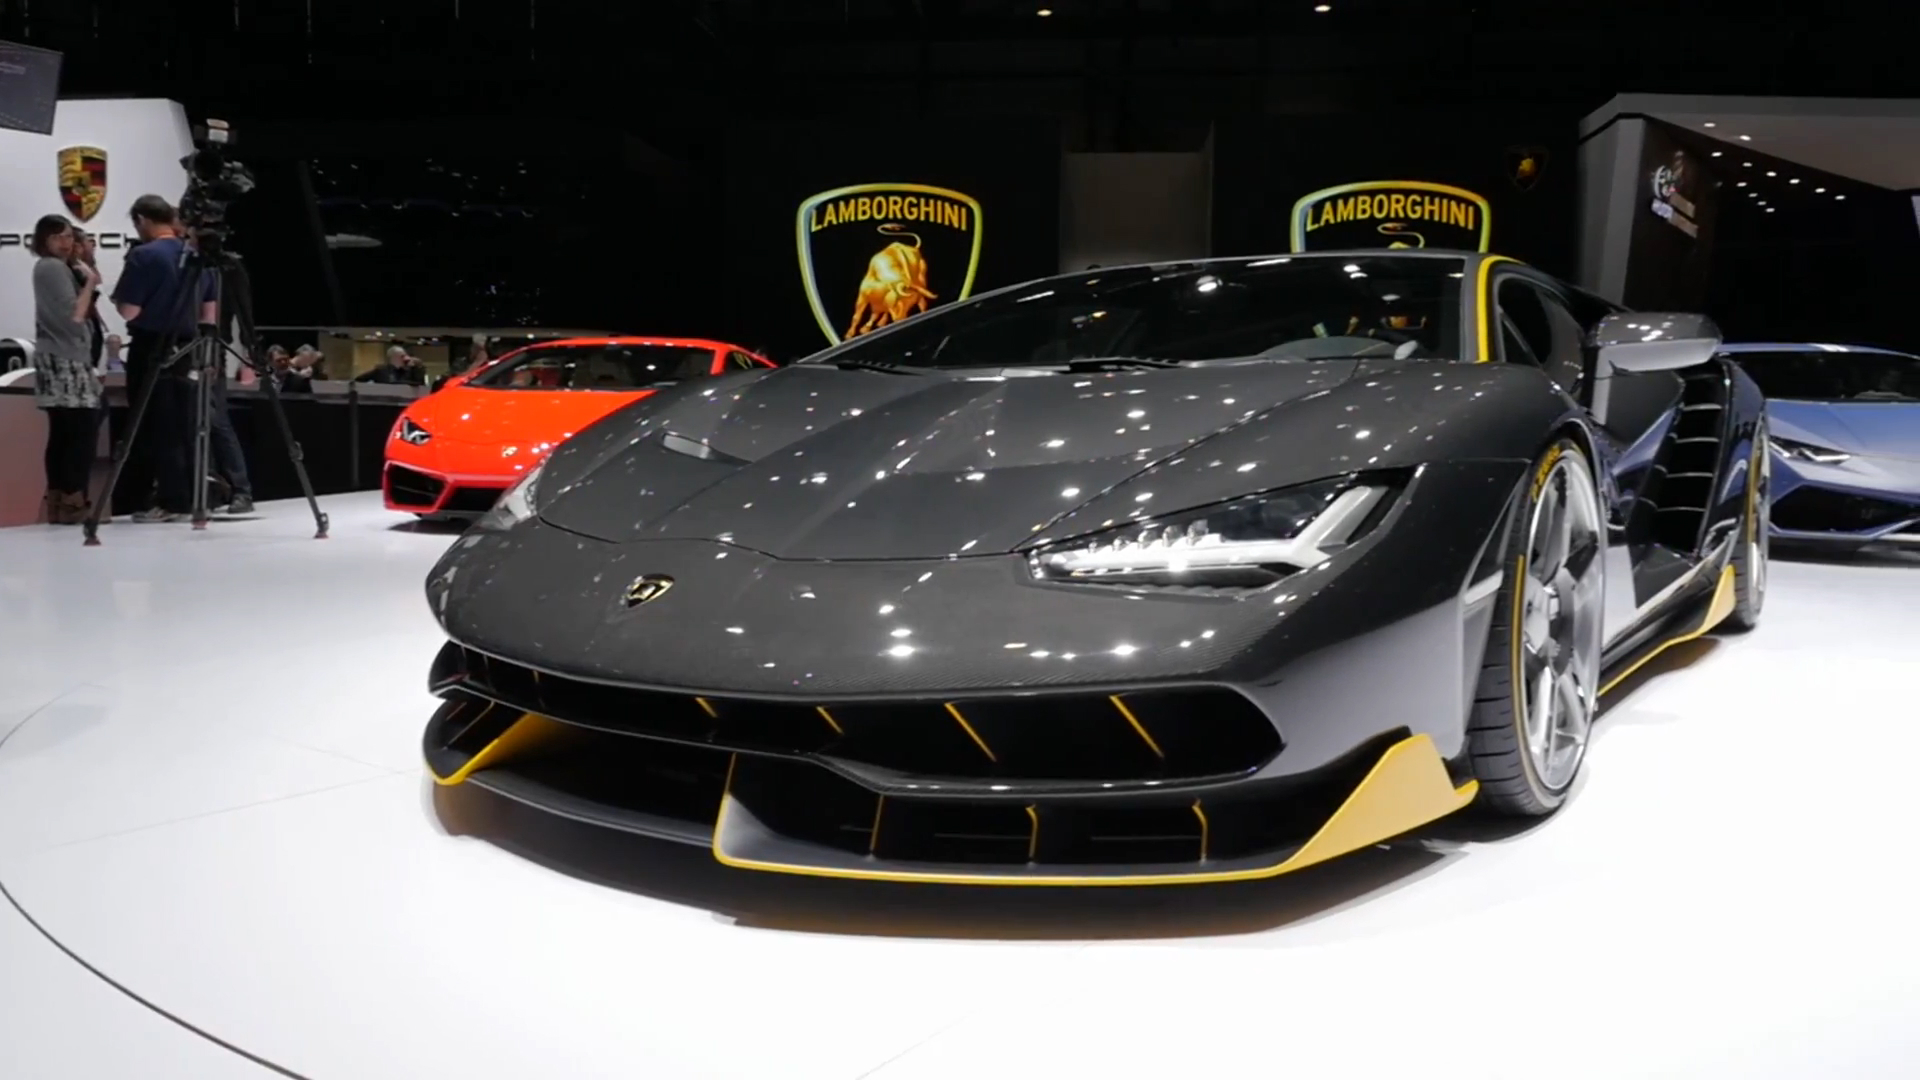 lamborghini's centenario roadster has arrived and it's already